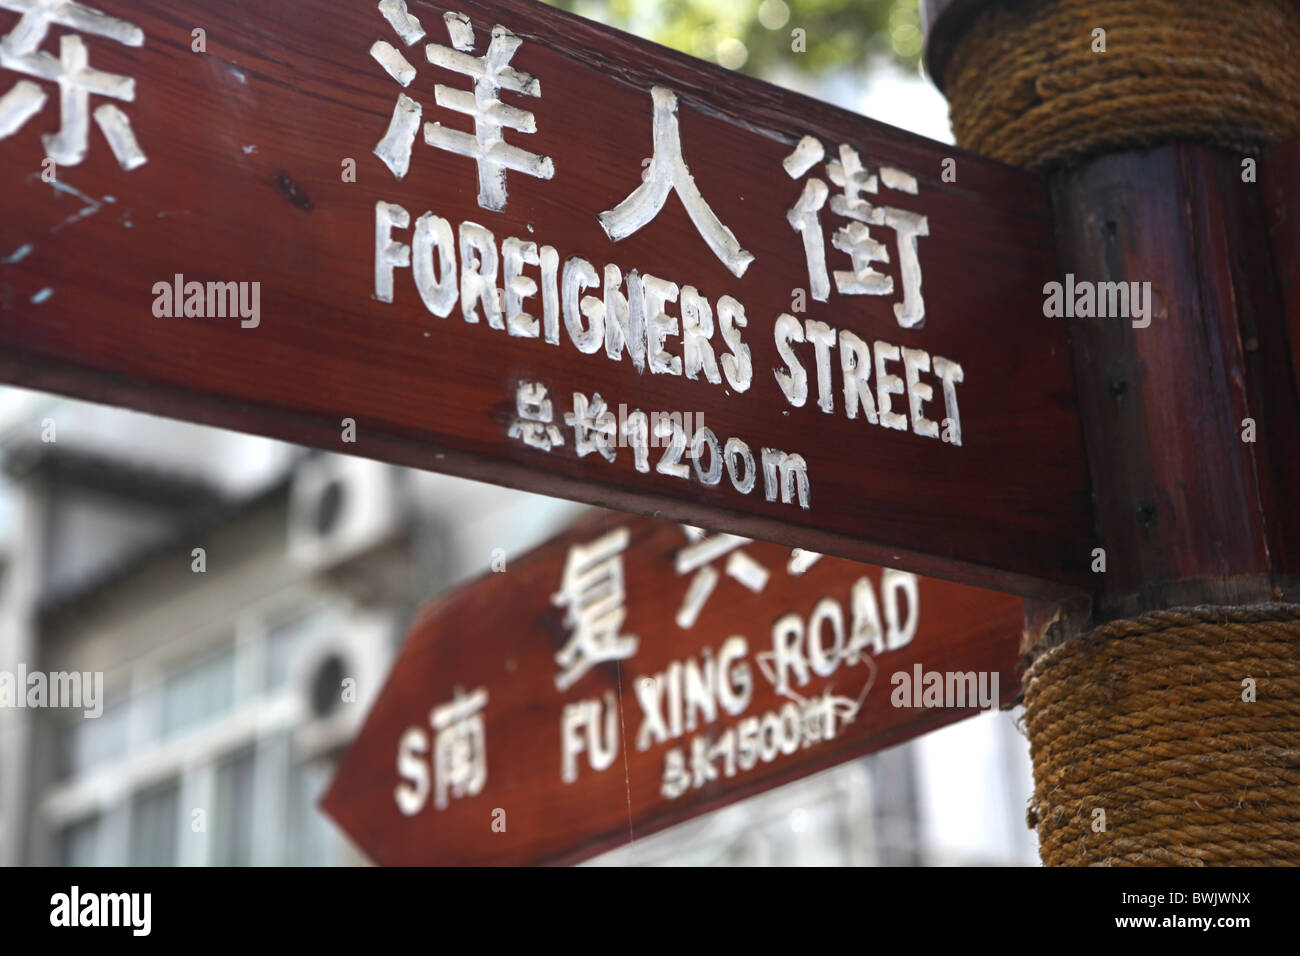 A road sign for Foreigners Street in Dali, Yunnan Province, China. - Stock Image